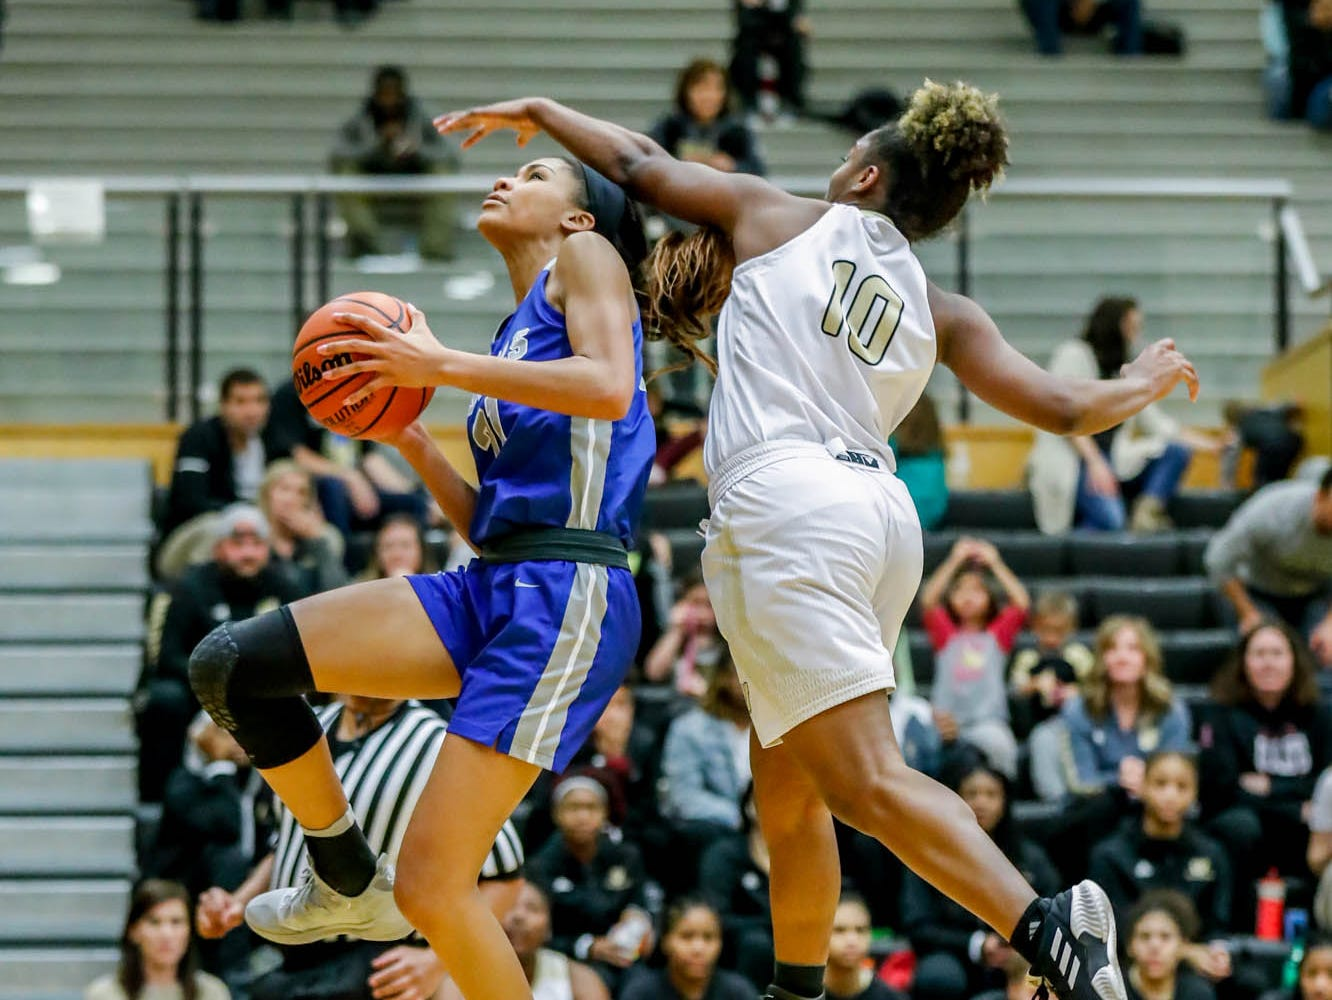 Warren Central High School's Shaila Beeler (10), tries to block a shot by Hamilton South Eastern's Tayah Irvin (21), during a game between Hamilton Southeastern High School and Warren Central High School, held at Warren on Thursday, Jan. 3, 2019.